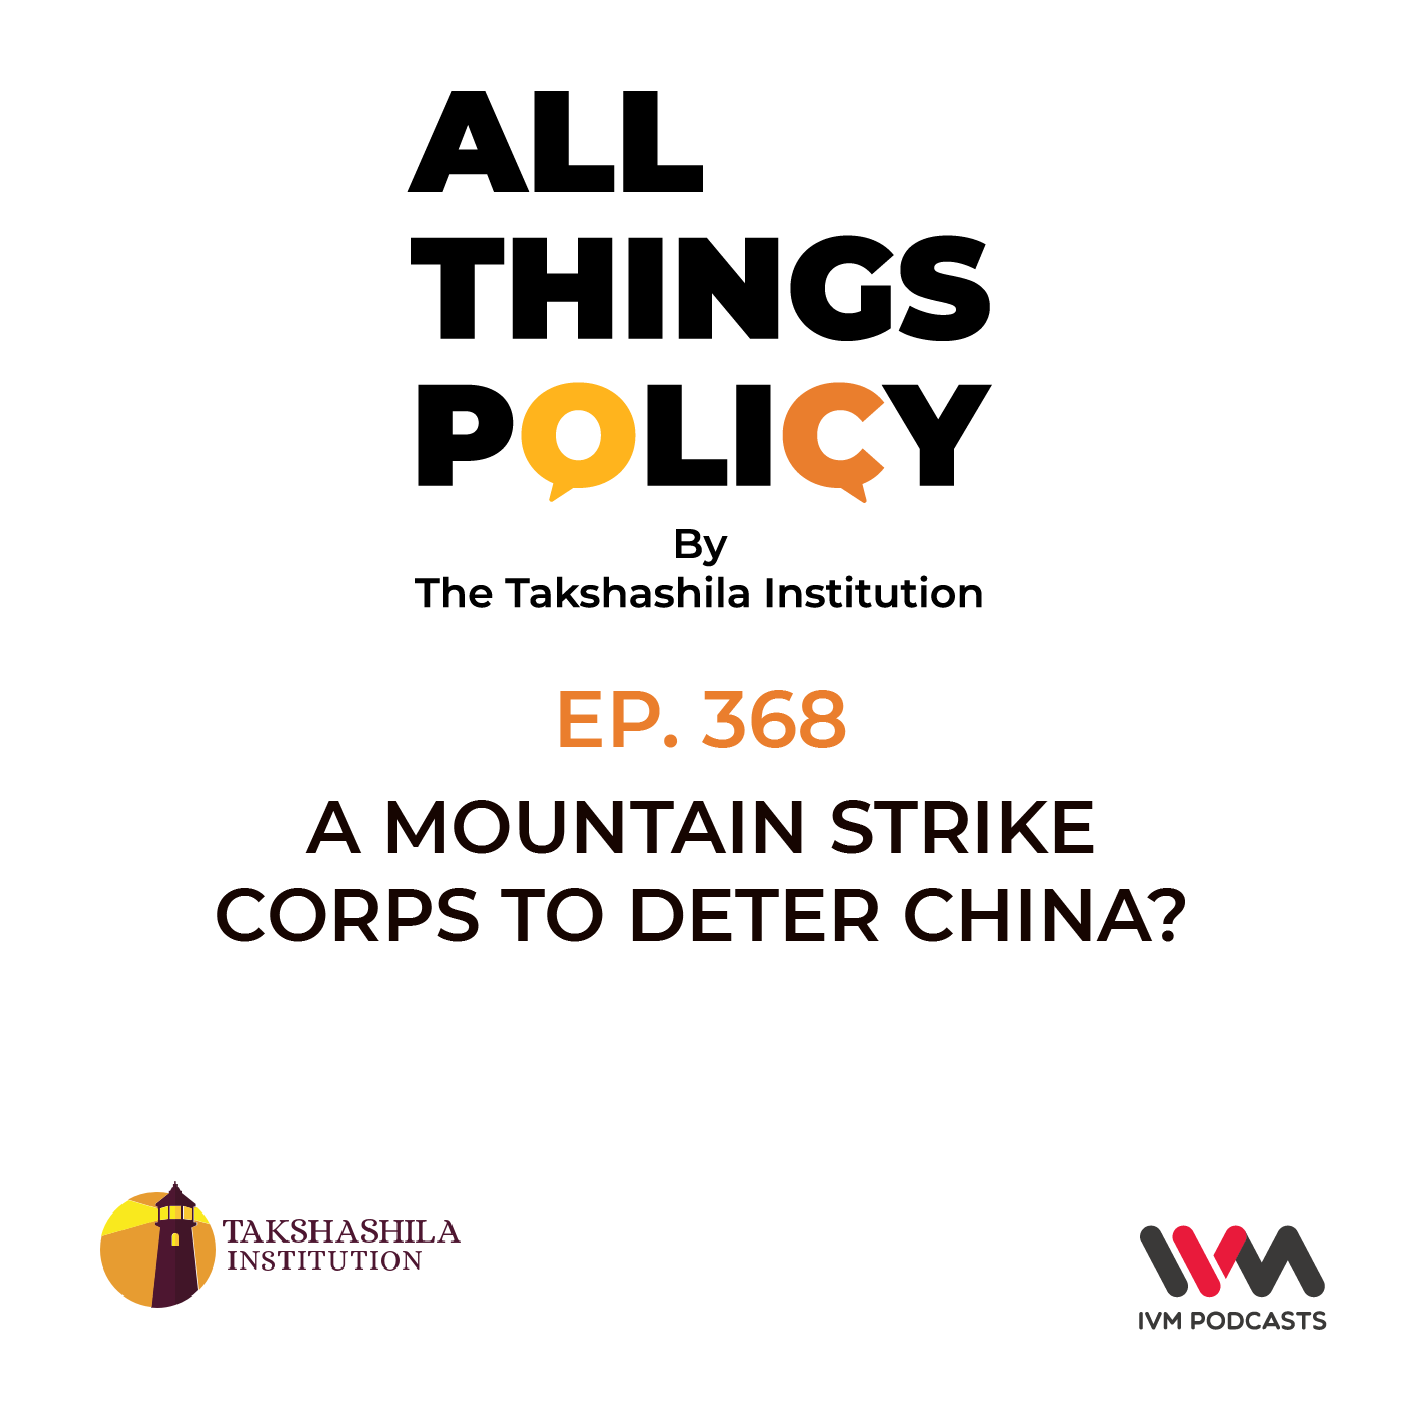 Ep. 368: A Mountain Strike Corps to Deter China?